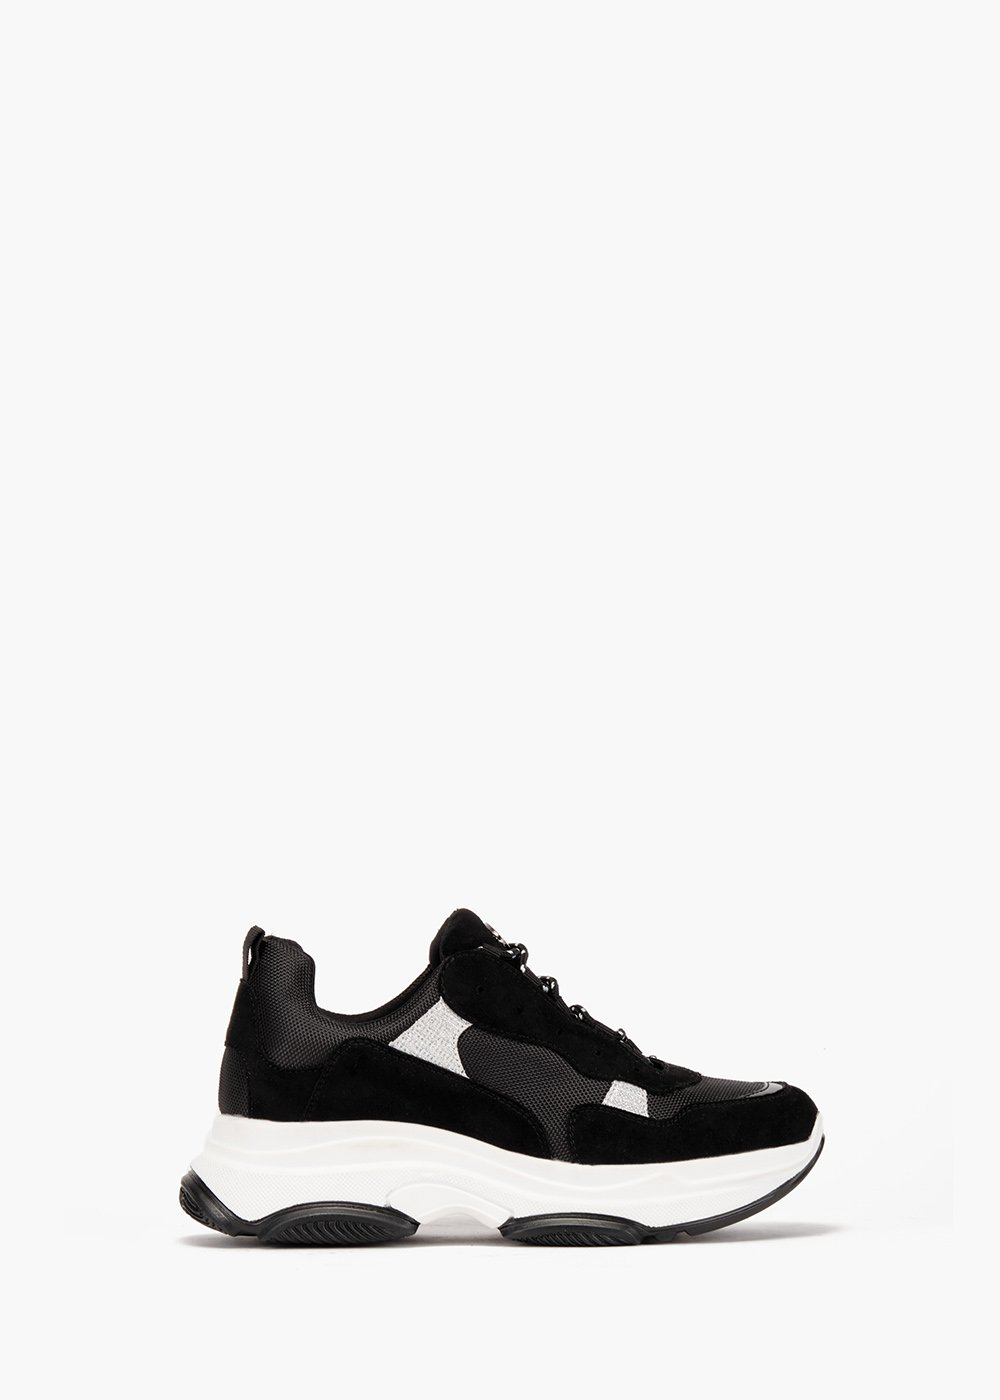 Gym shoes Shayla in eco suede - Black - Woman